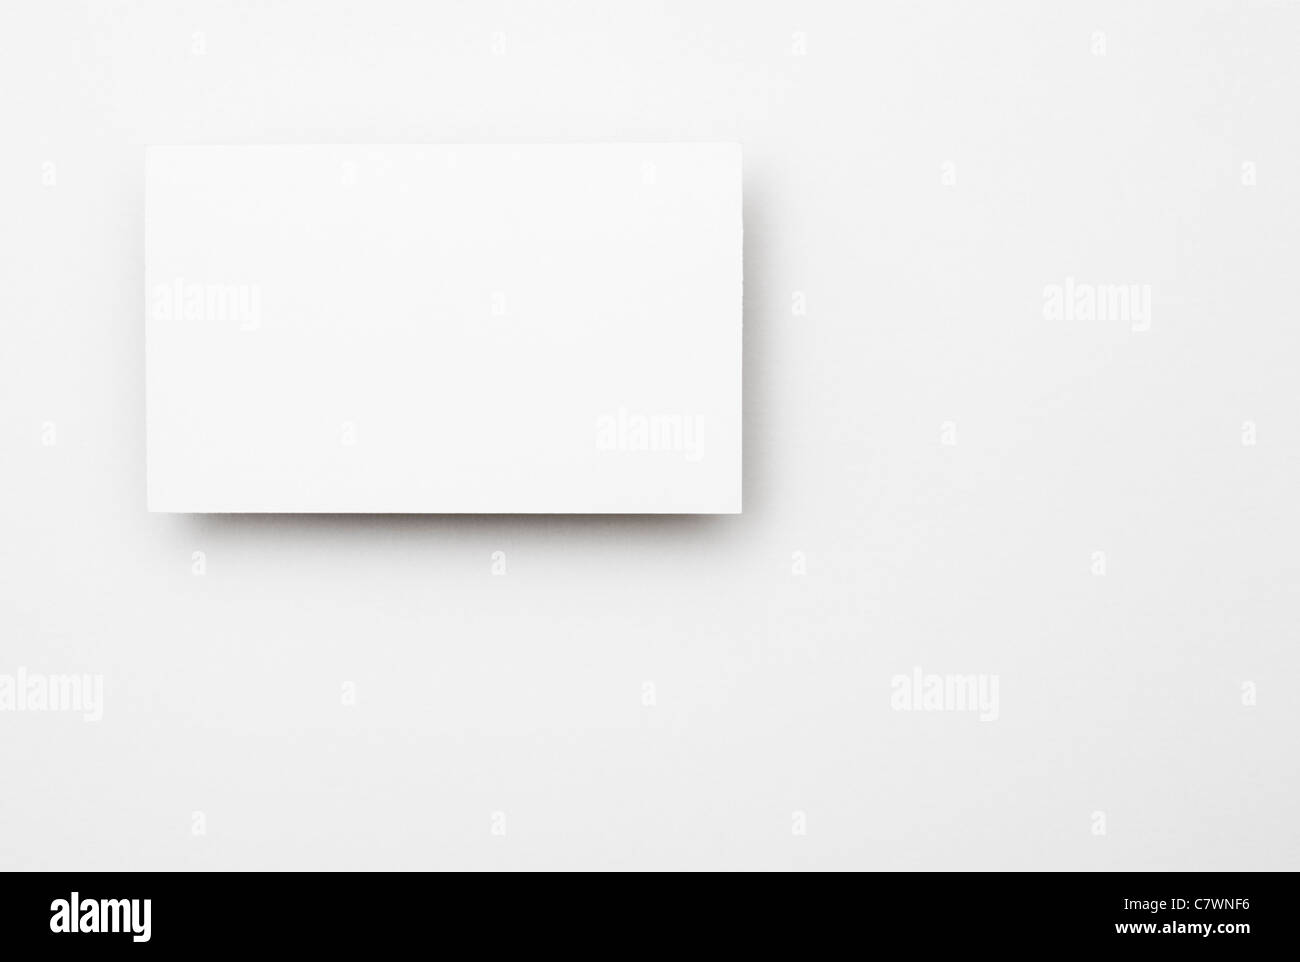 Blank business card. - Stock Image